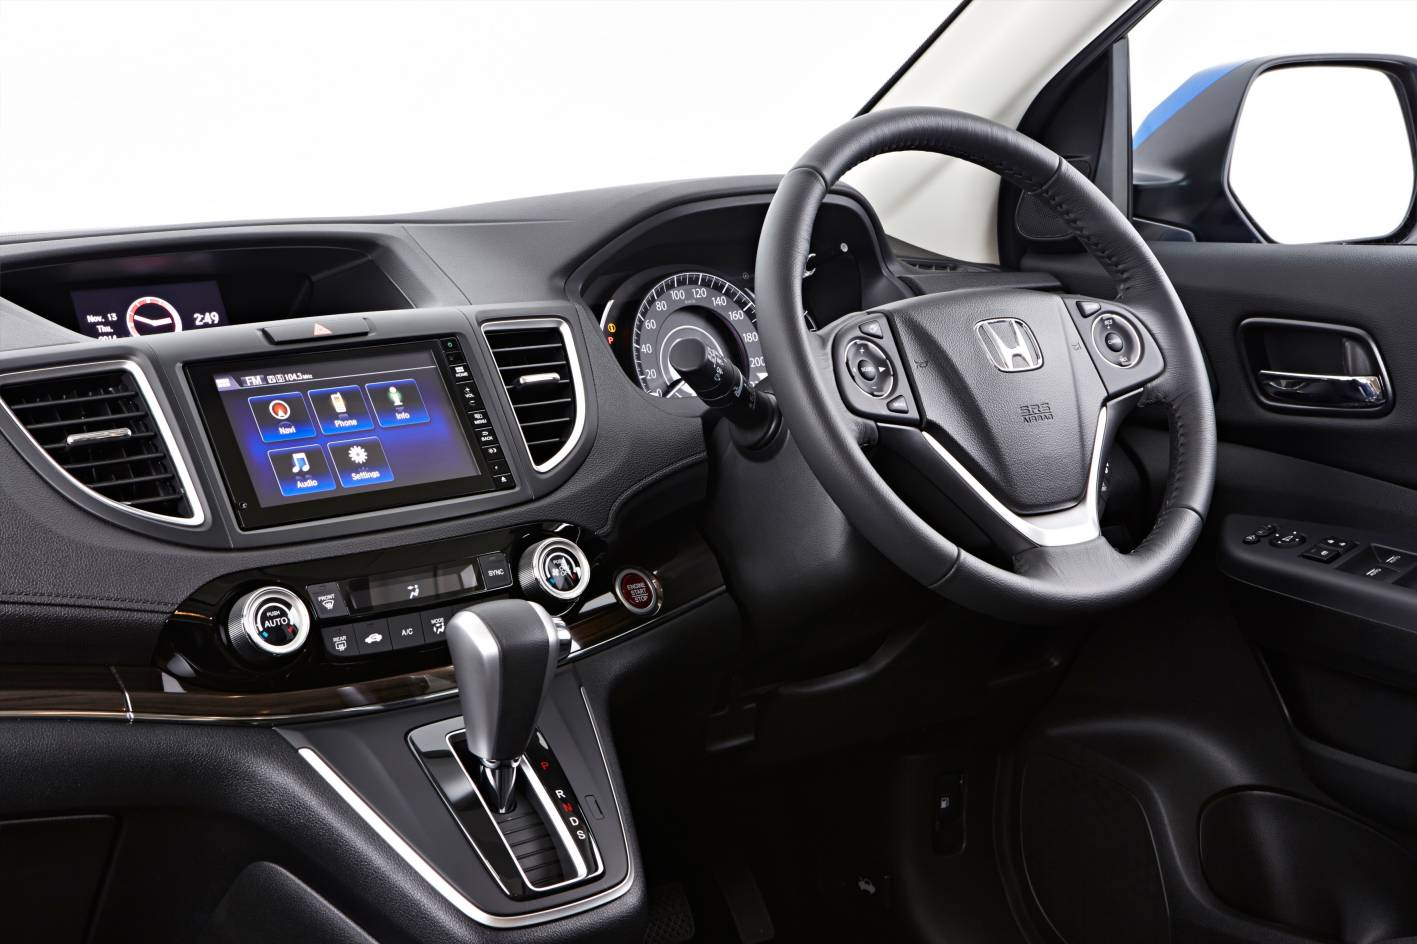 adorable-design-of-the-black-dash-ideas-with-black-steering-wheels-with-silver-accents-ideas-as-the-honda-cr-v-2015-interior